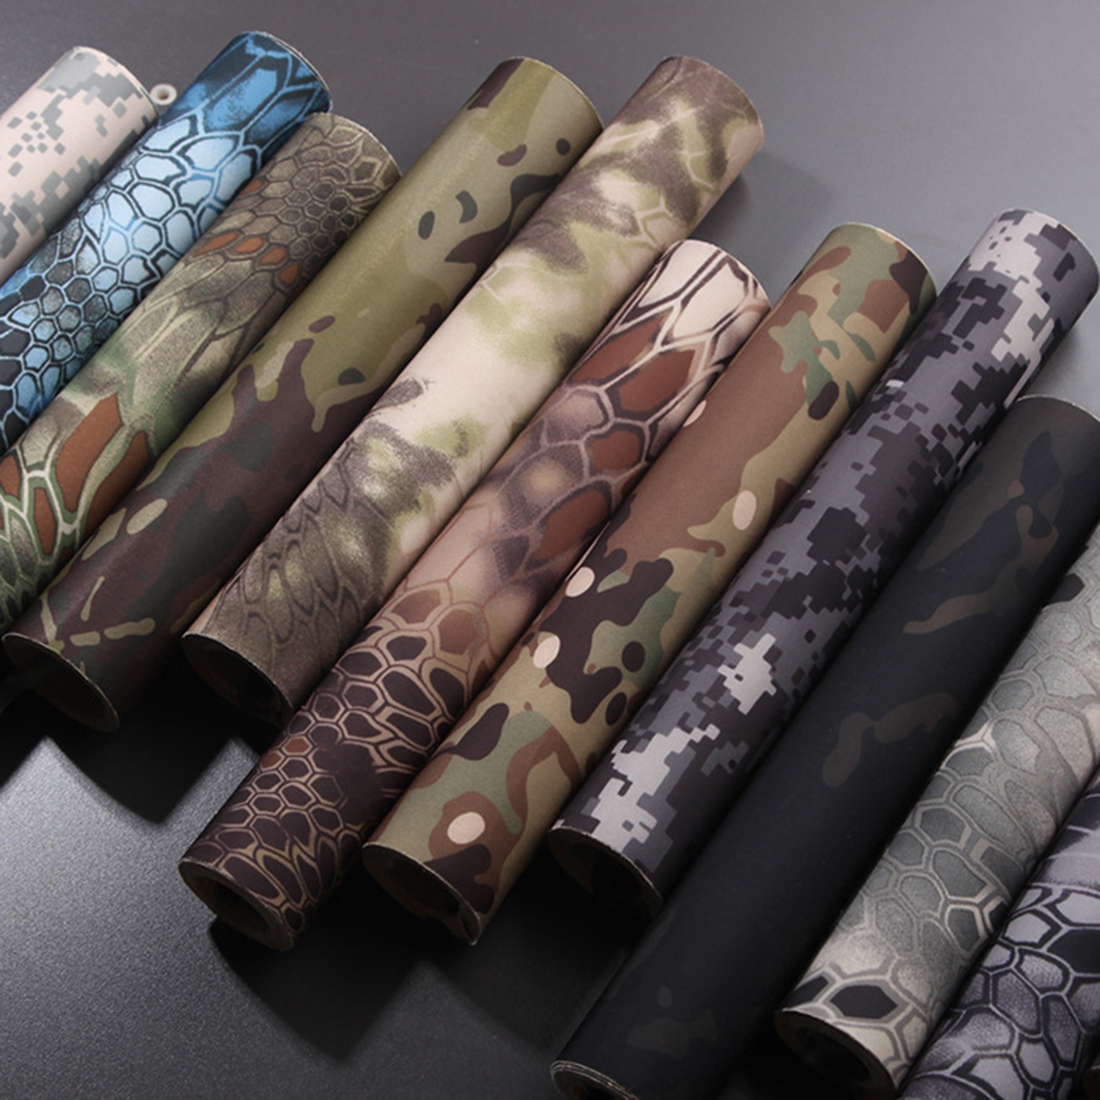 Modiker 30 X 150cm DIY Tactical Self Adhesive Elastic Camouflage Cloth Protective Camo Tape - Python Pattern Desert Color